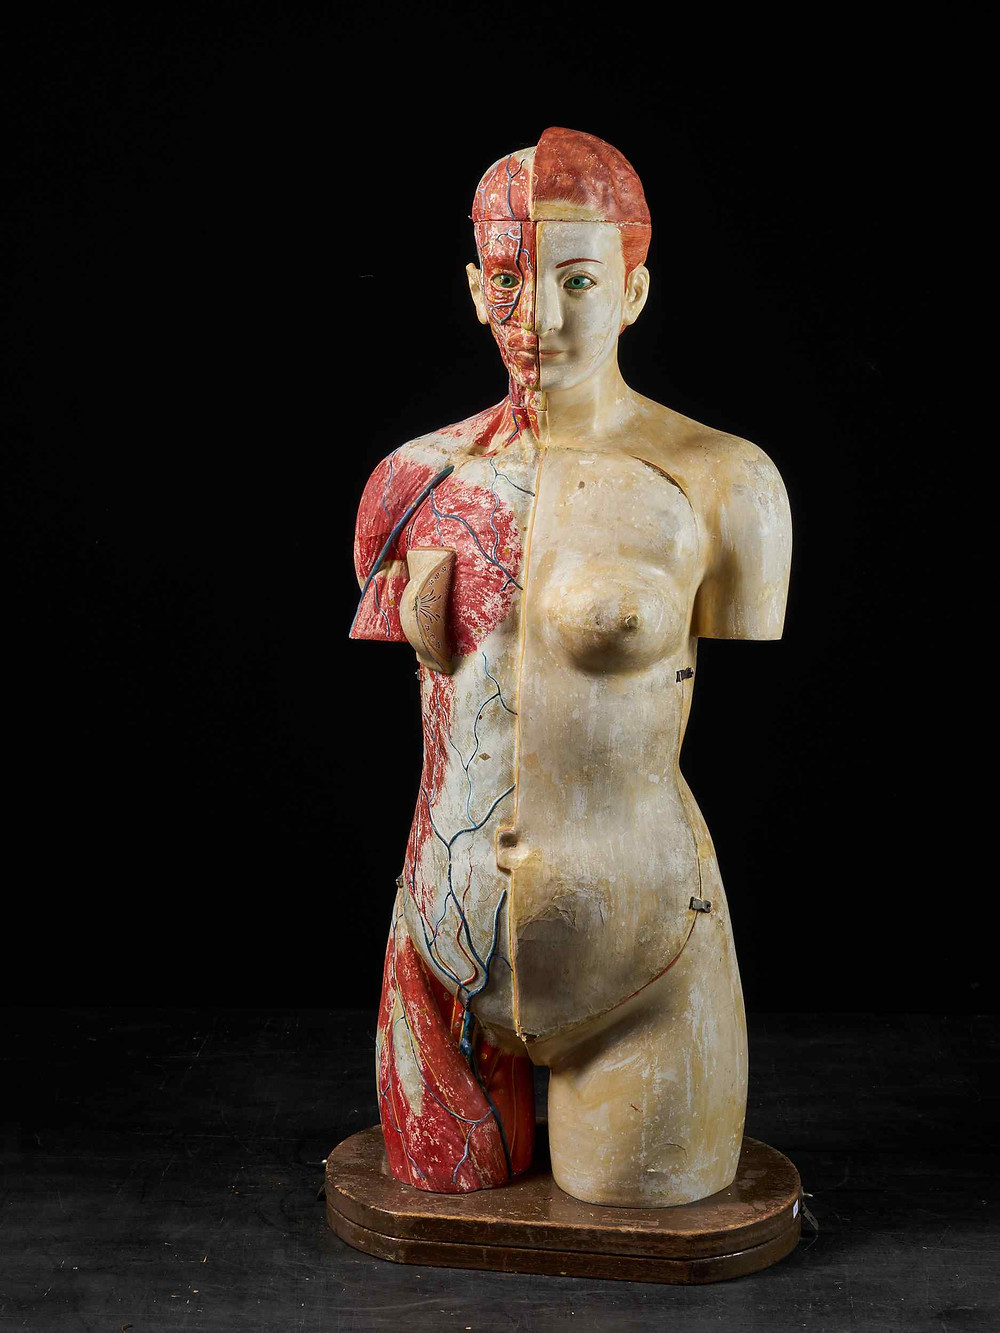 paper mache female torso model from early 1900's; half with skin and hair and half missing first layers of superficial fascia